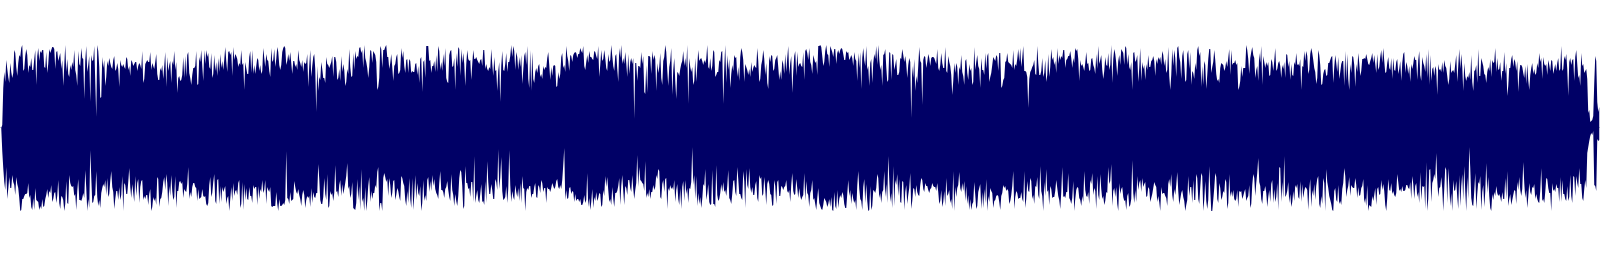 waveform of track #145554